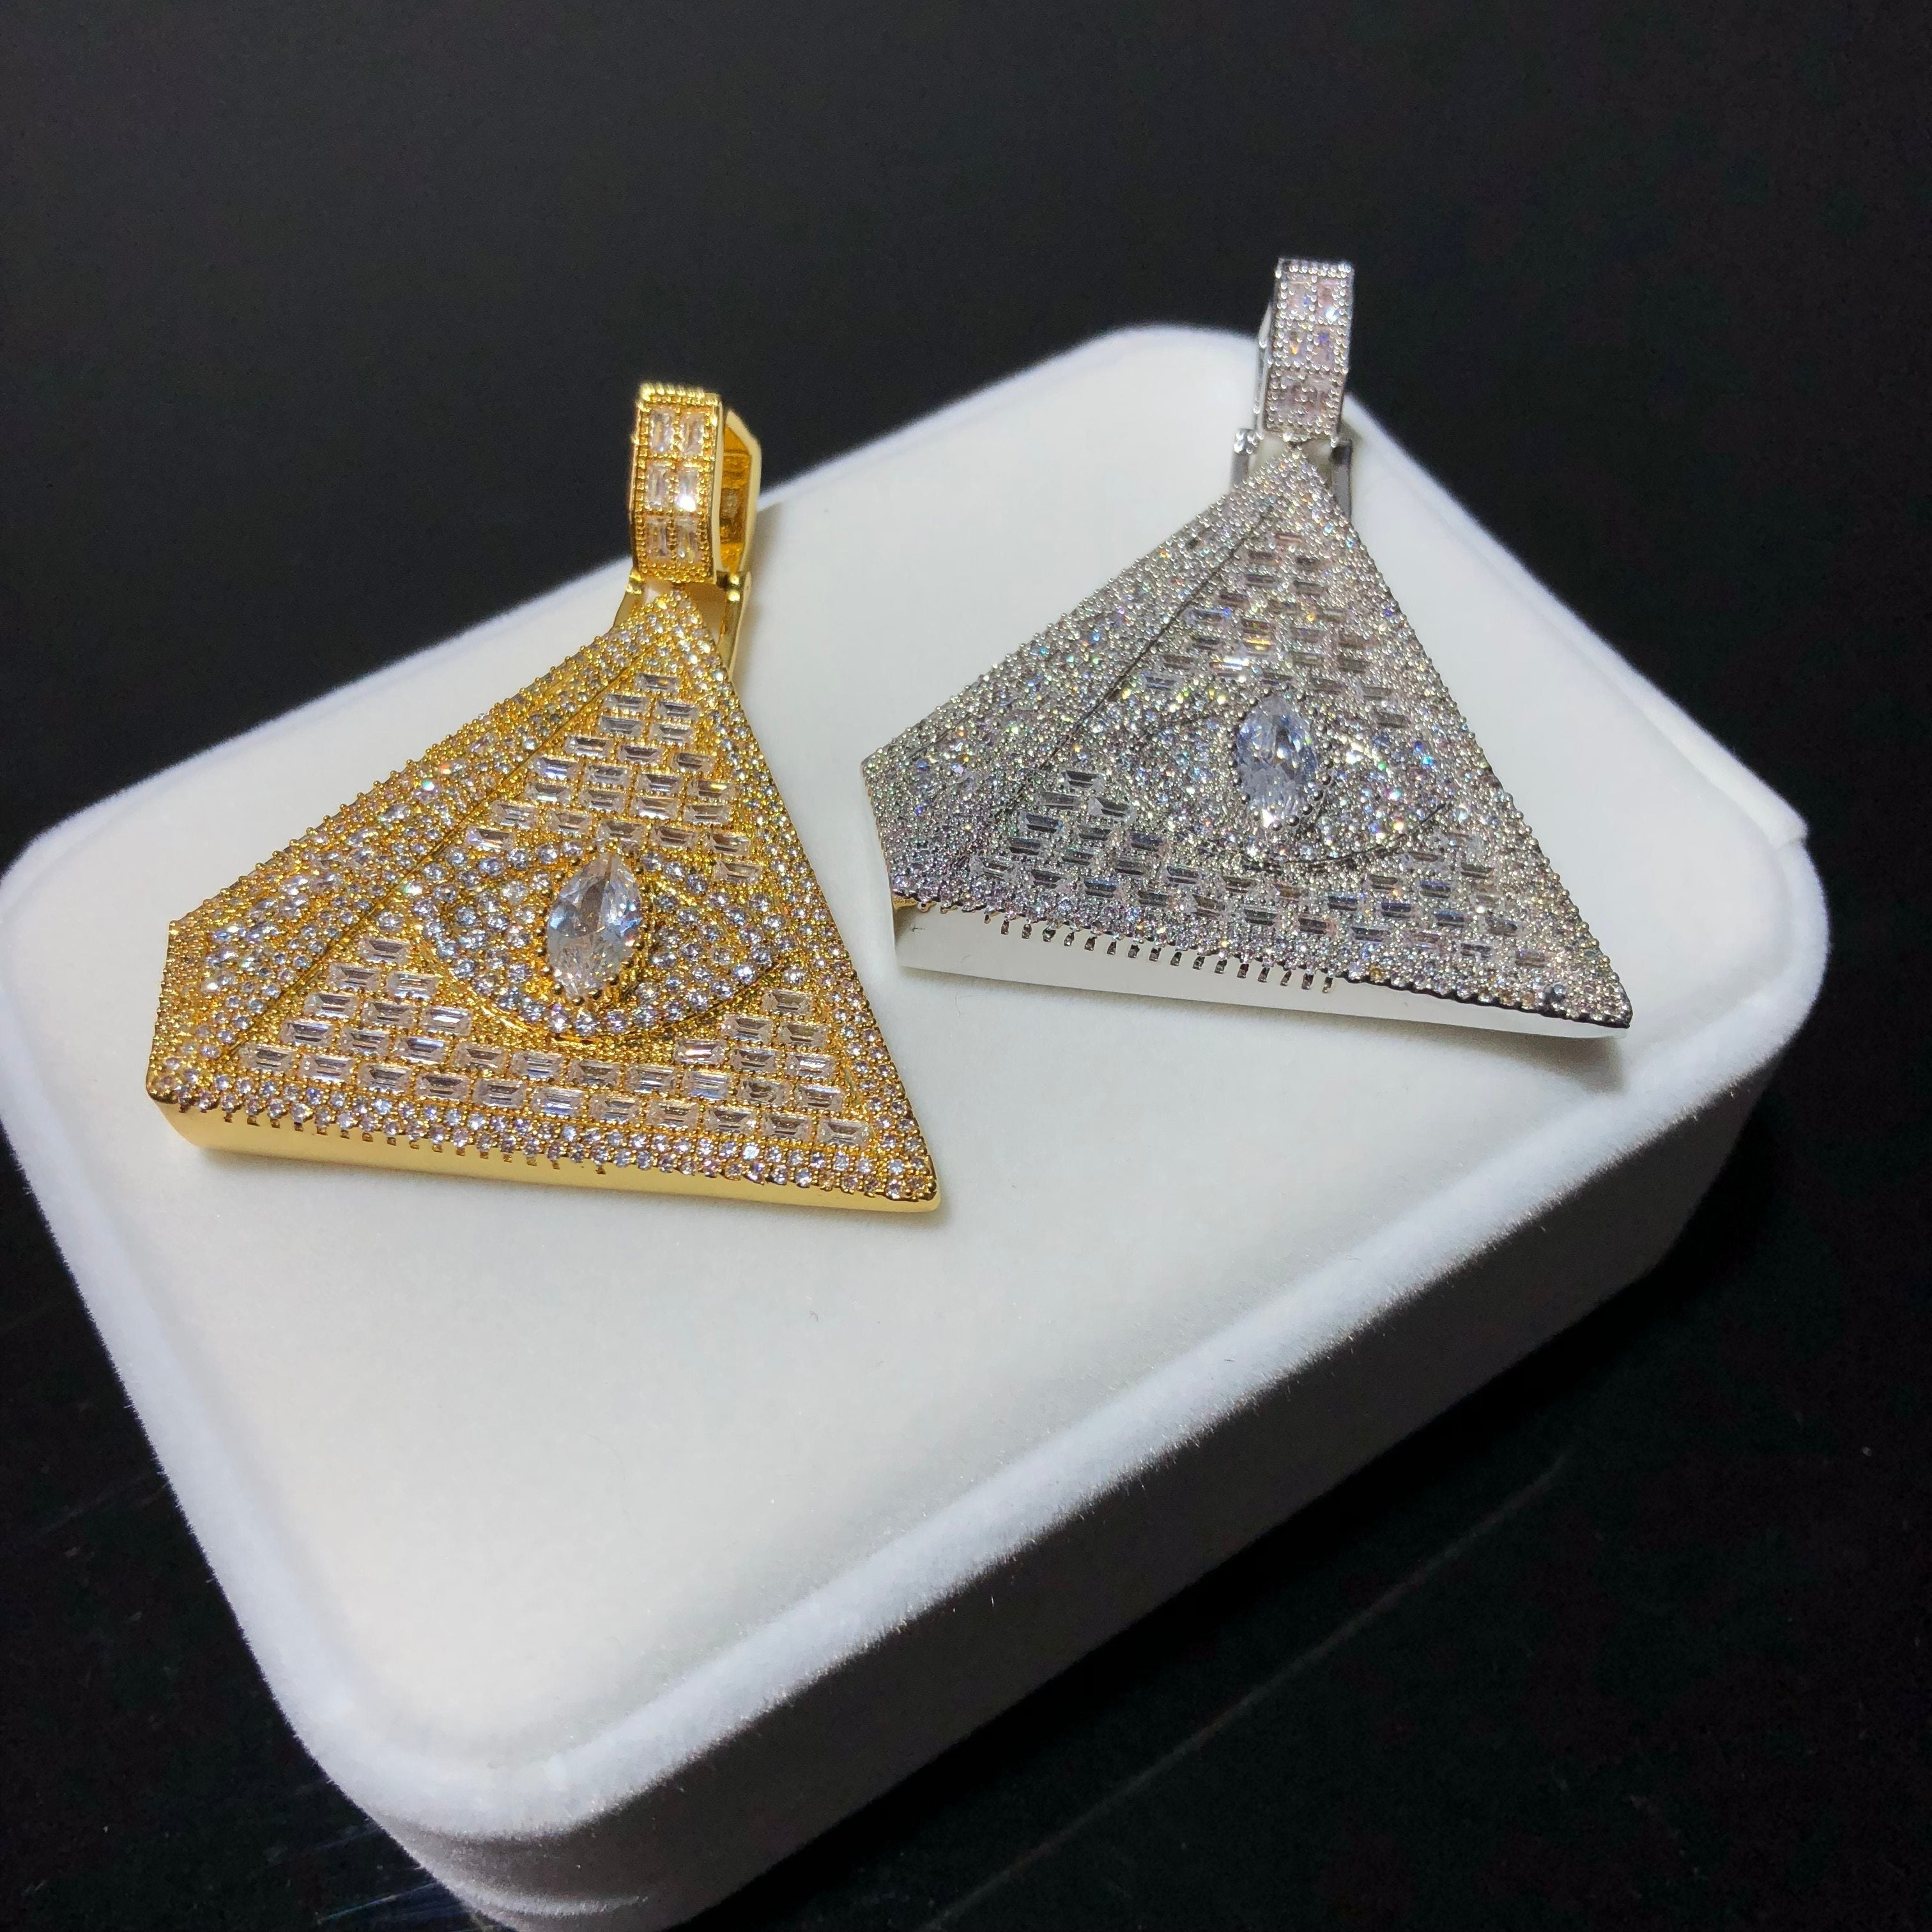 Baguette Pyramid Pendant Twenty 7 Links Pendants